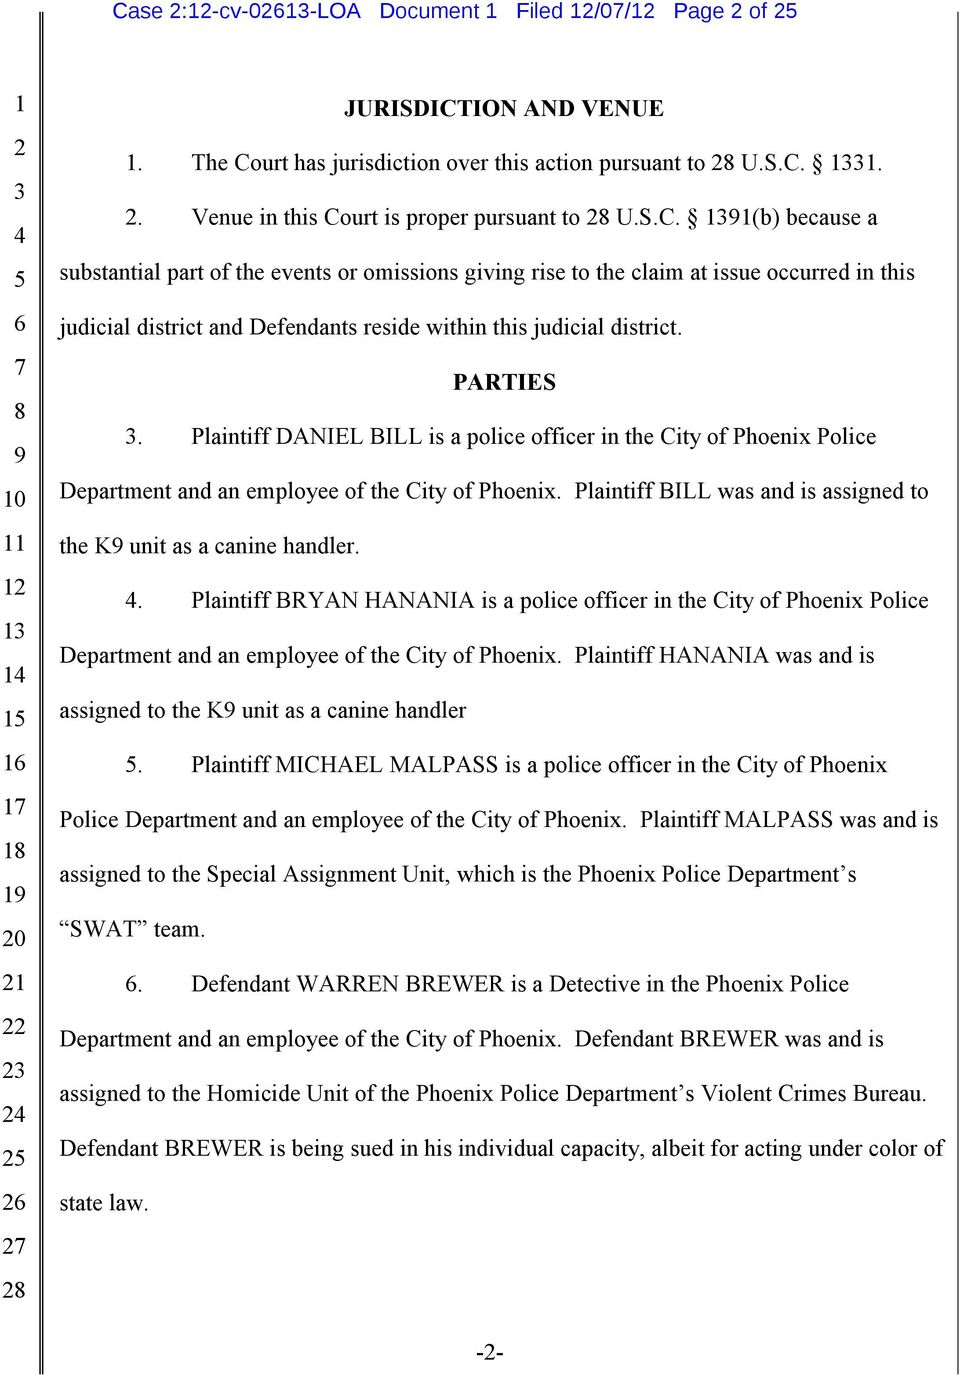 Plaintiff BILL was and is assigned to the K unit as a canine handler.. Plaintiff BRYAN HANANIA is a police officer in the City of Phoenix Police Department and an employee of the City of Phoenix.